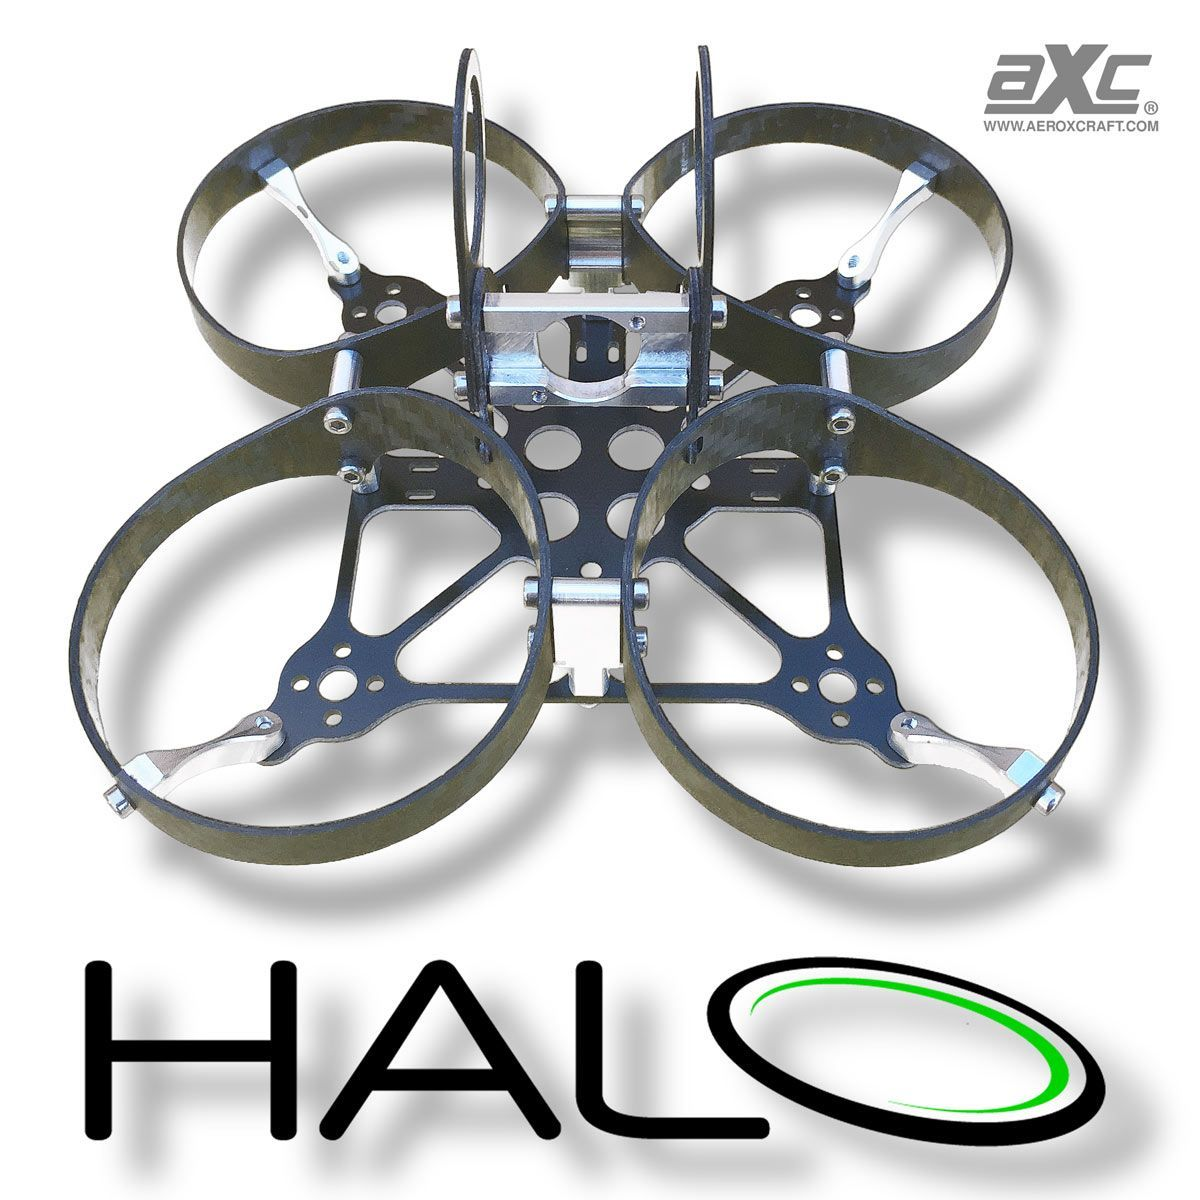 AXC Halo - Micro FPV Quad Frame AXC-Drones - Innovation with ...